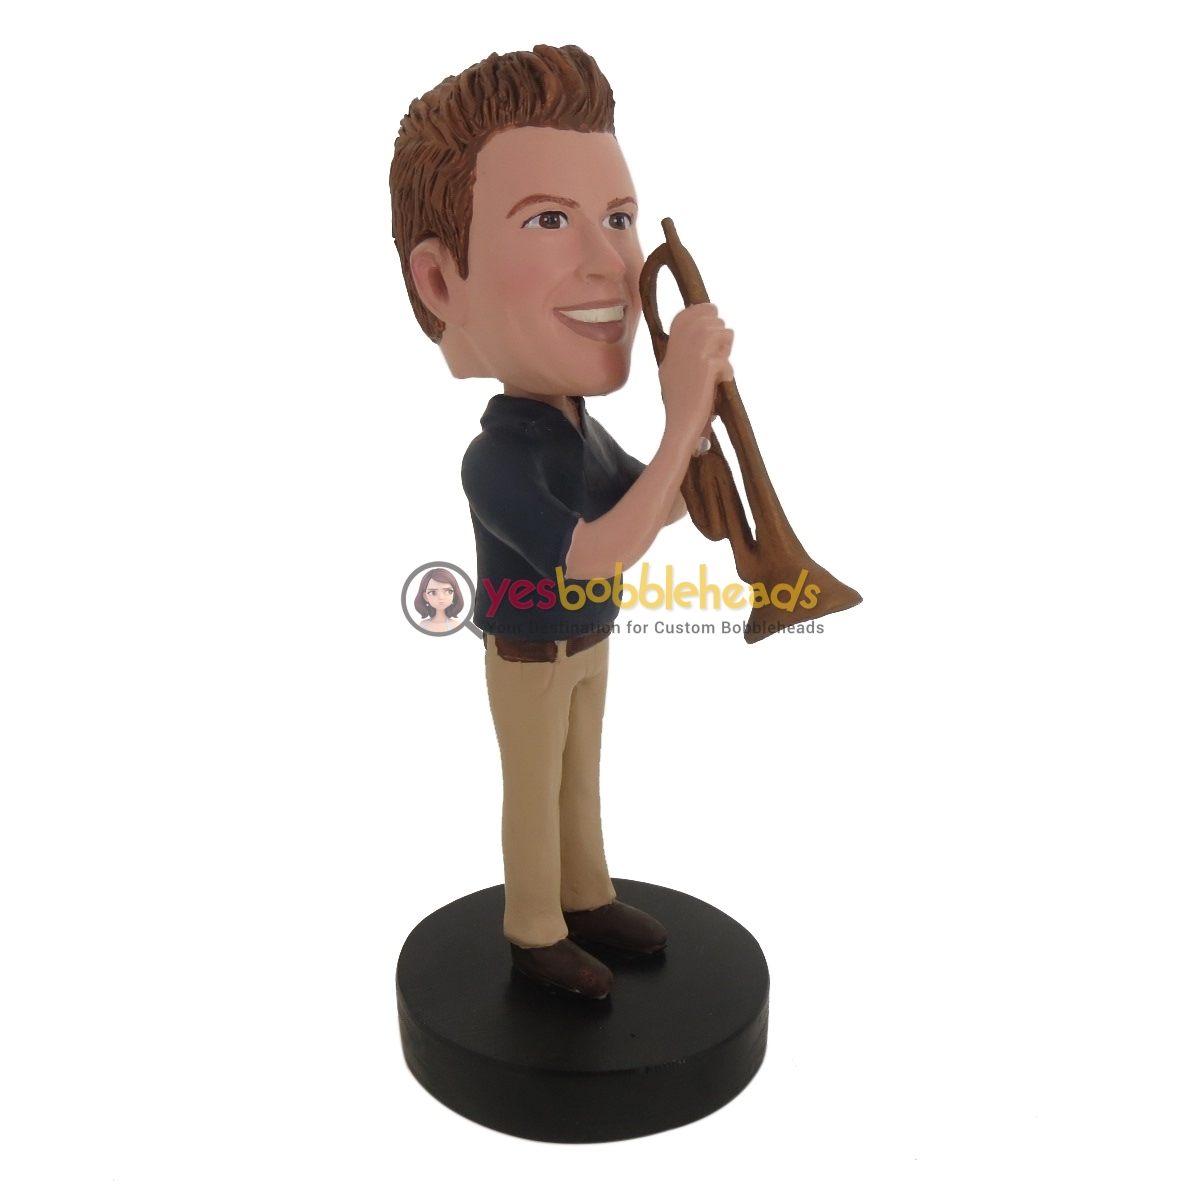 Picture of Custom Bobblehead Doll: Trumpet Player